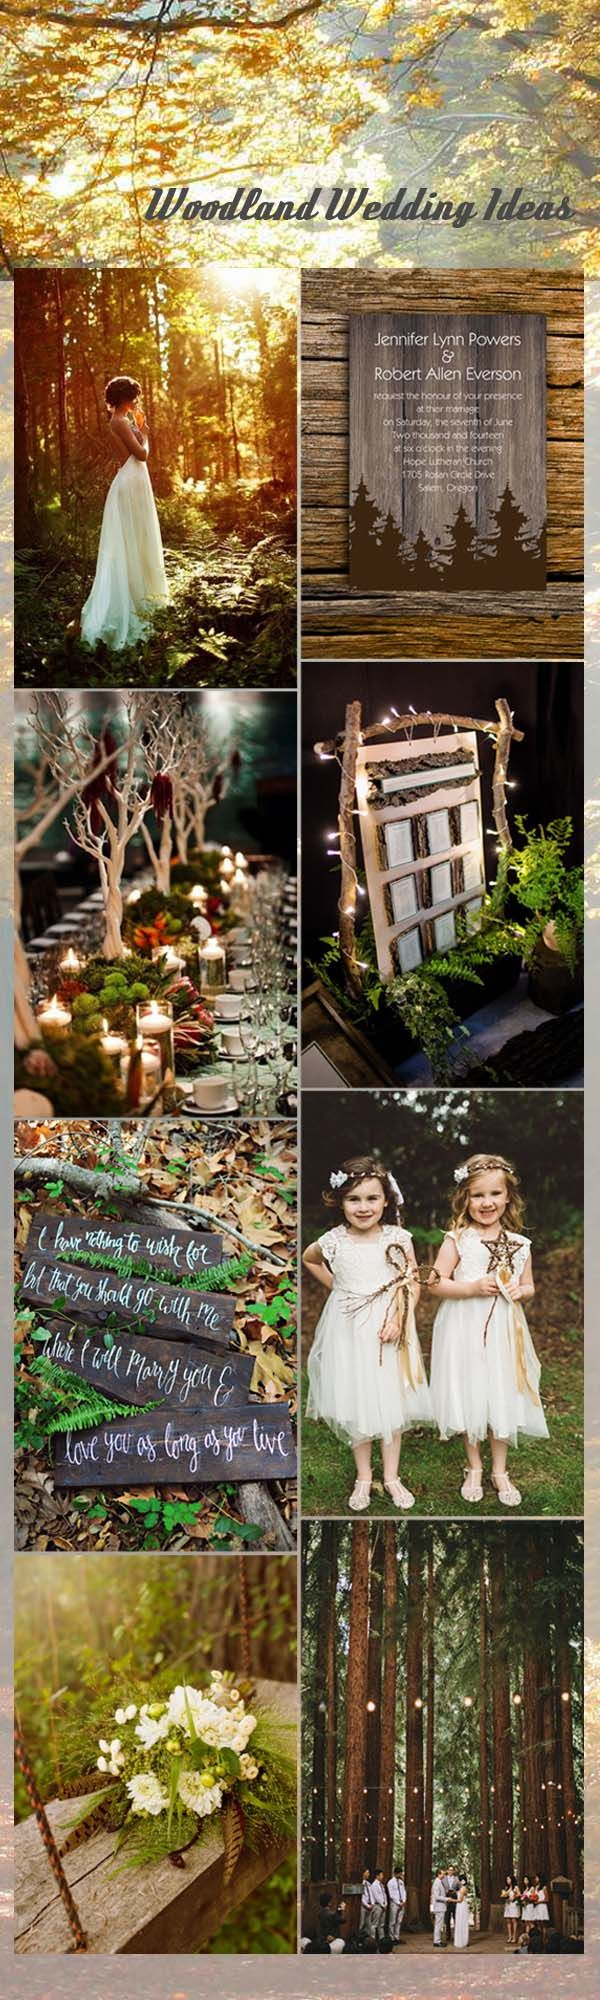 whimsical woodland wedding ideas and invitations